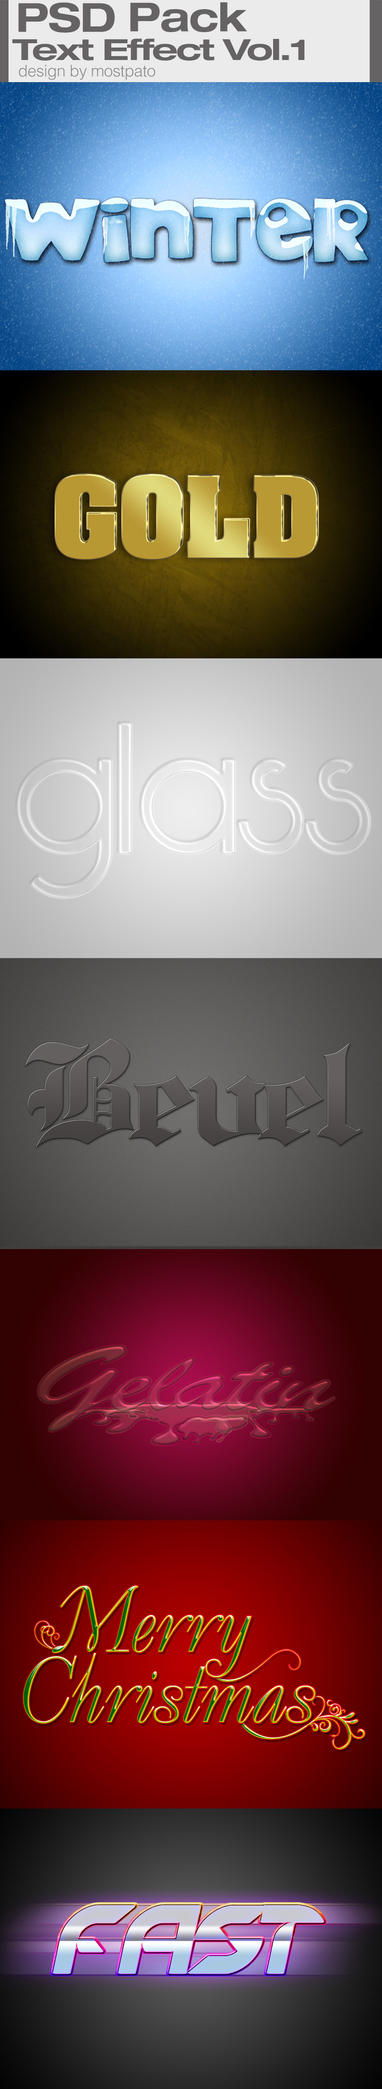 PSD Pack text effect vol1 by mostpato